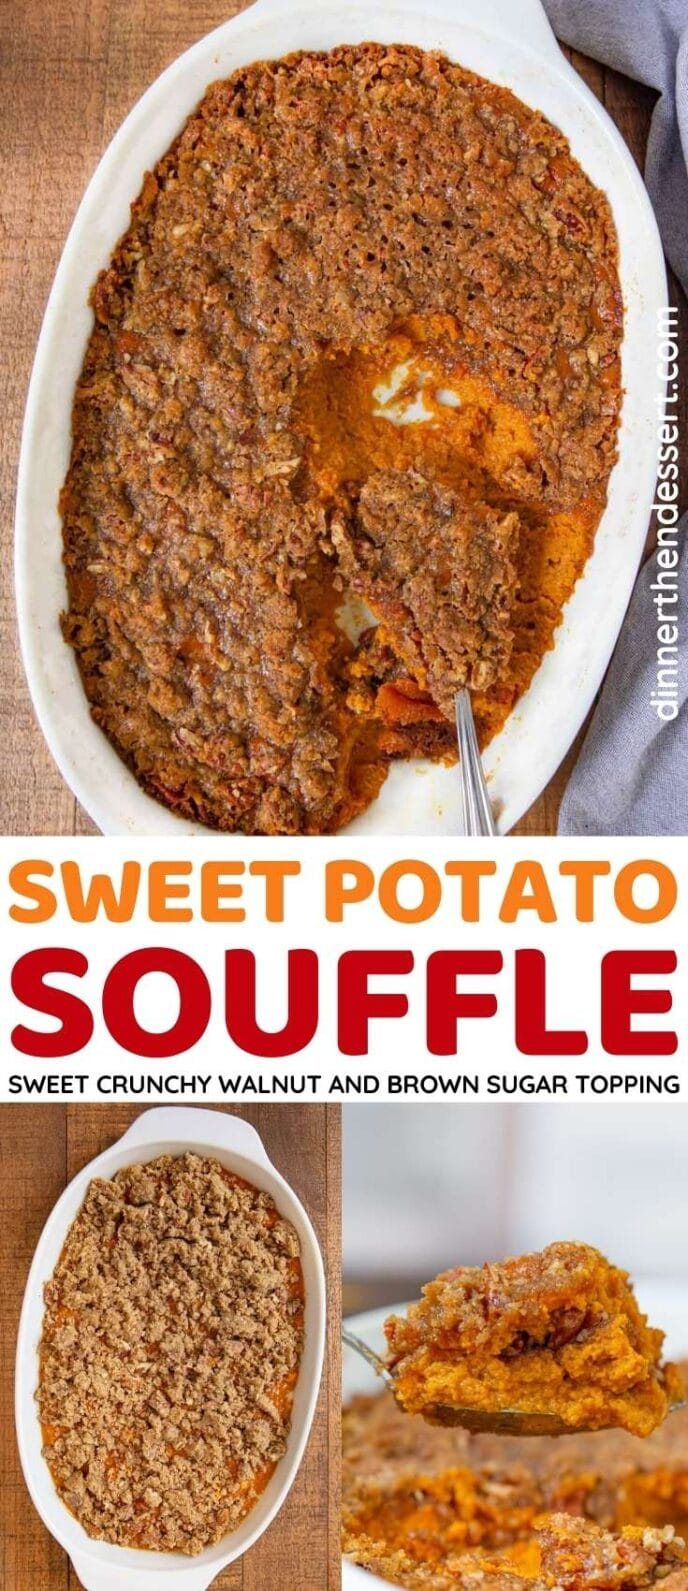 Sweet Potato Souffle collage